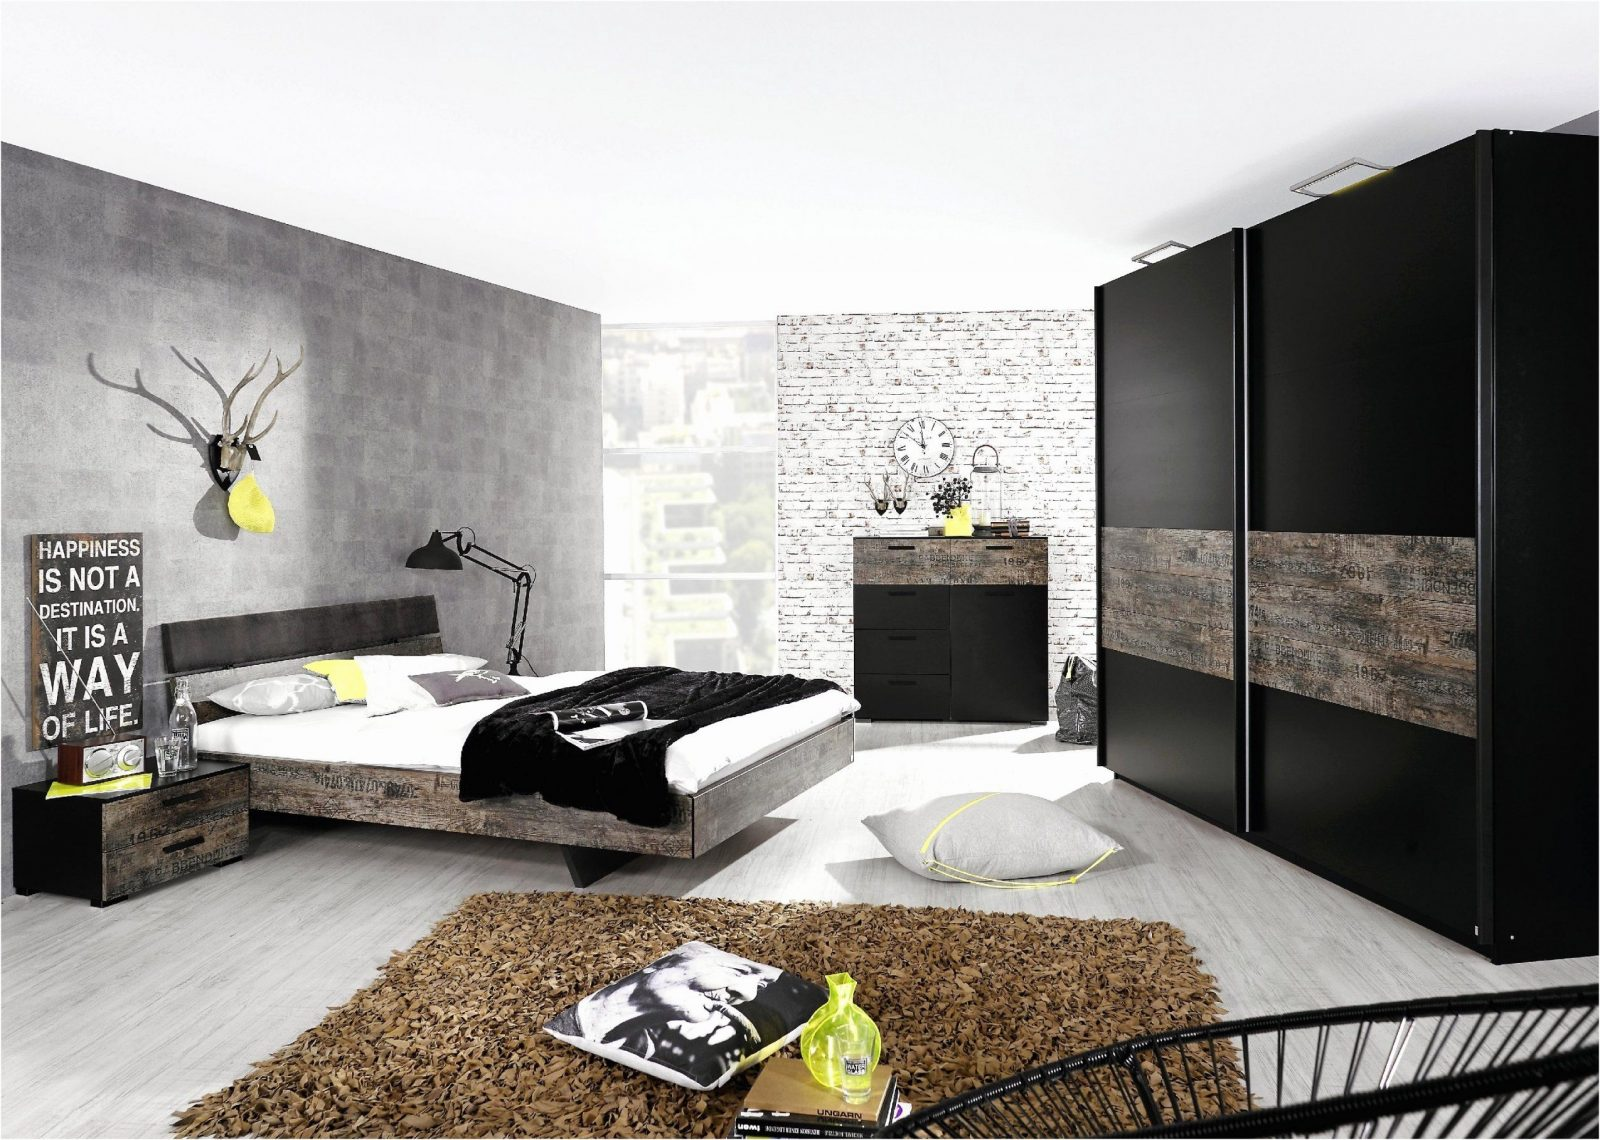 schimmel auf holzmbel entfernen elegant farbe bei altem mbel entfernen abbeizen godoit ch with. Black Bedroom Furniture Sets. Home Design Ideas